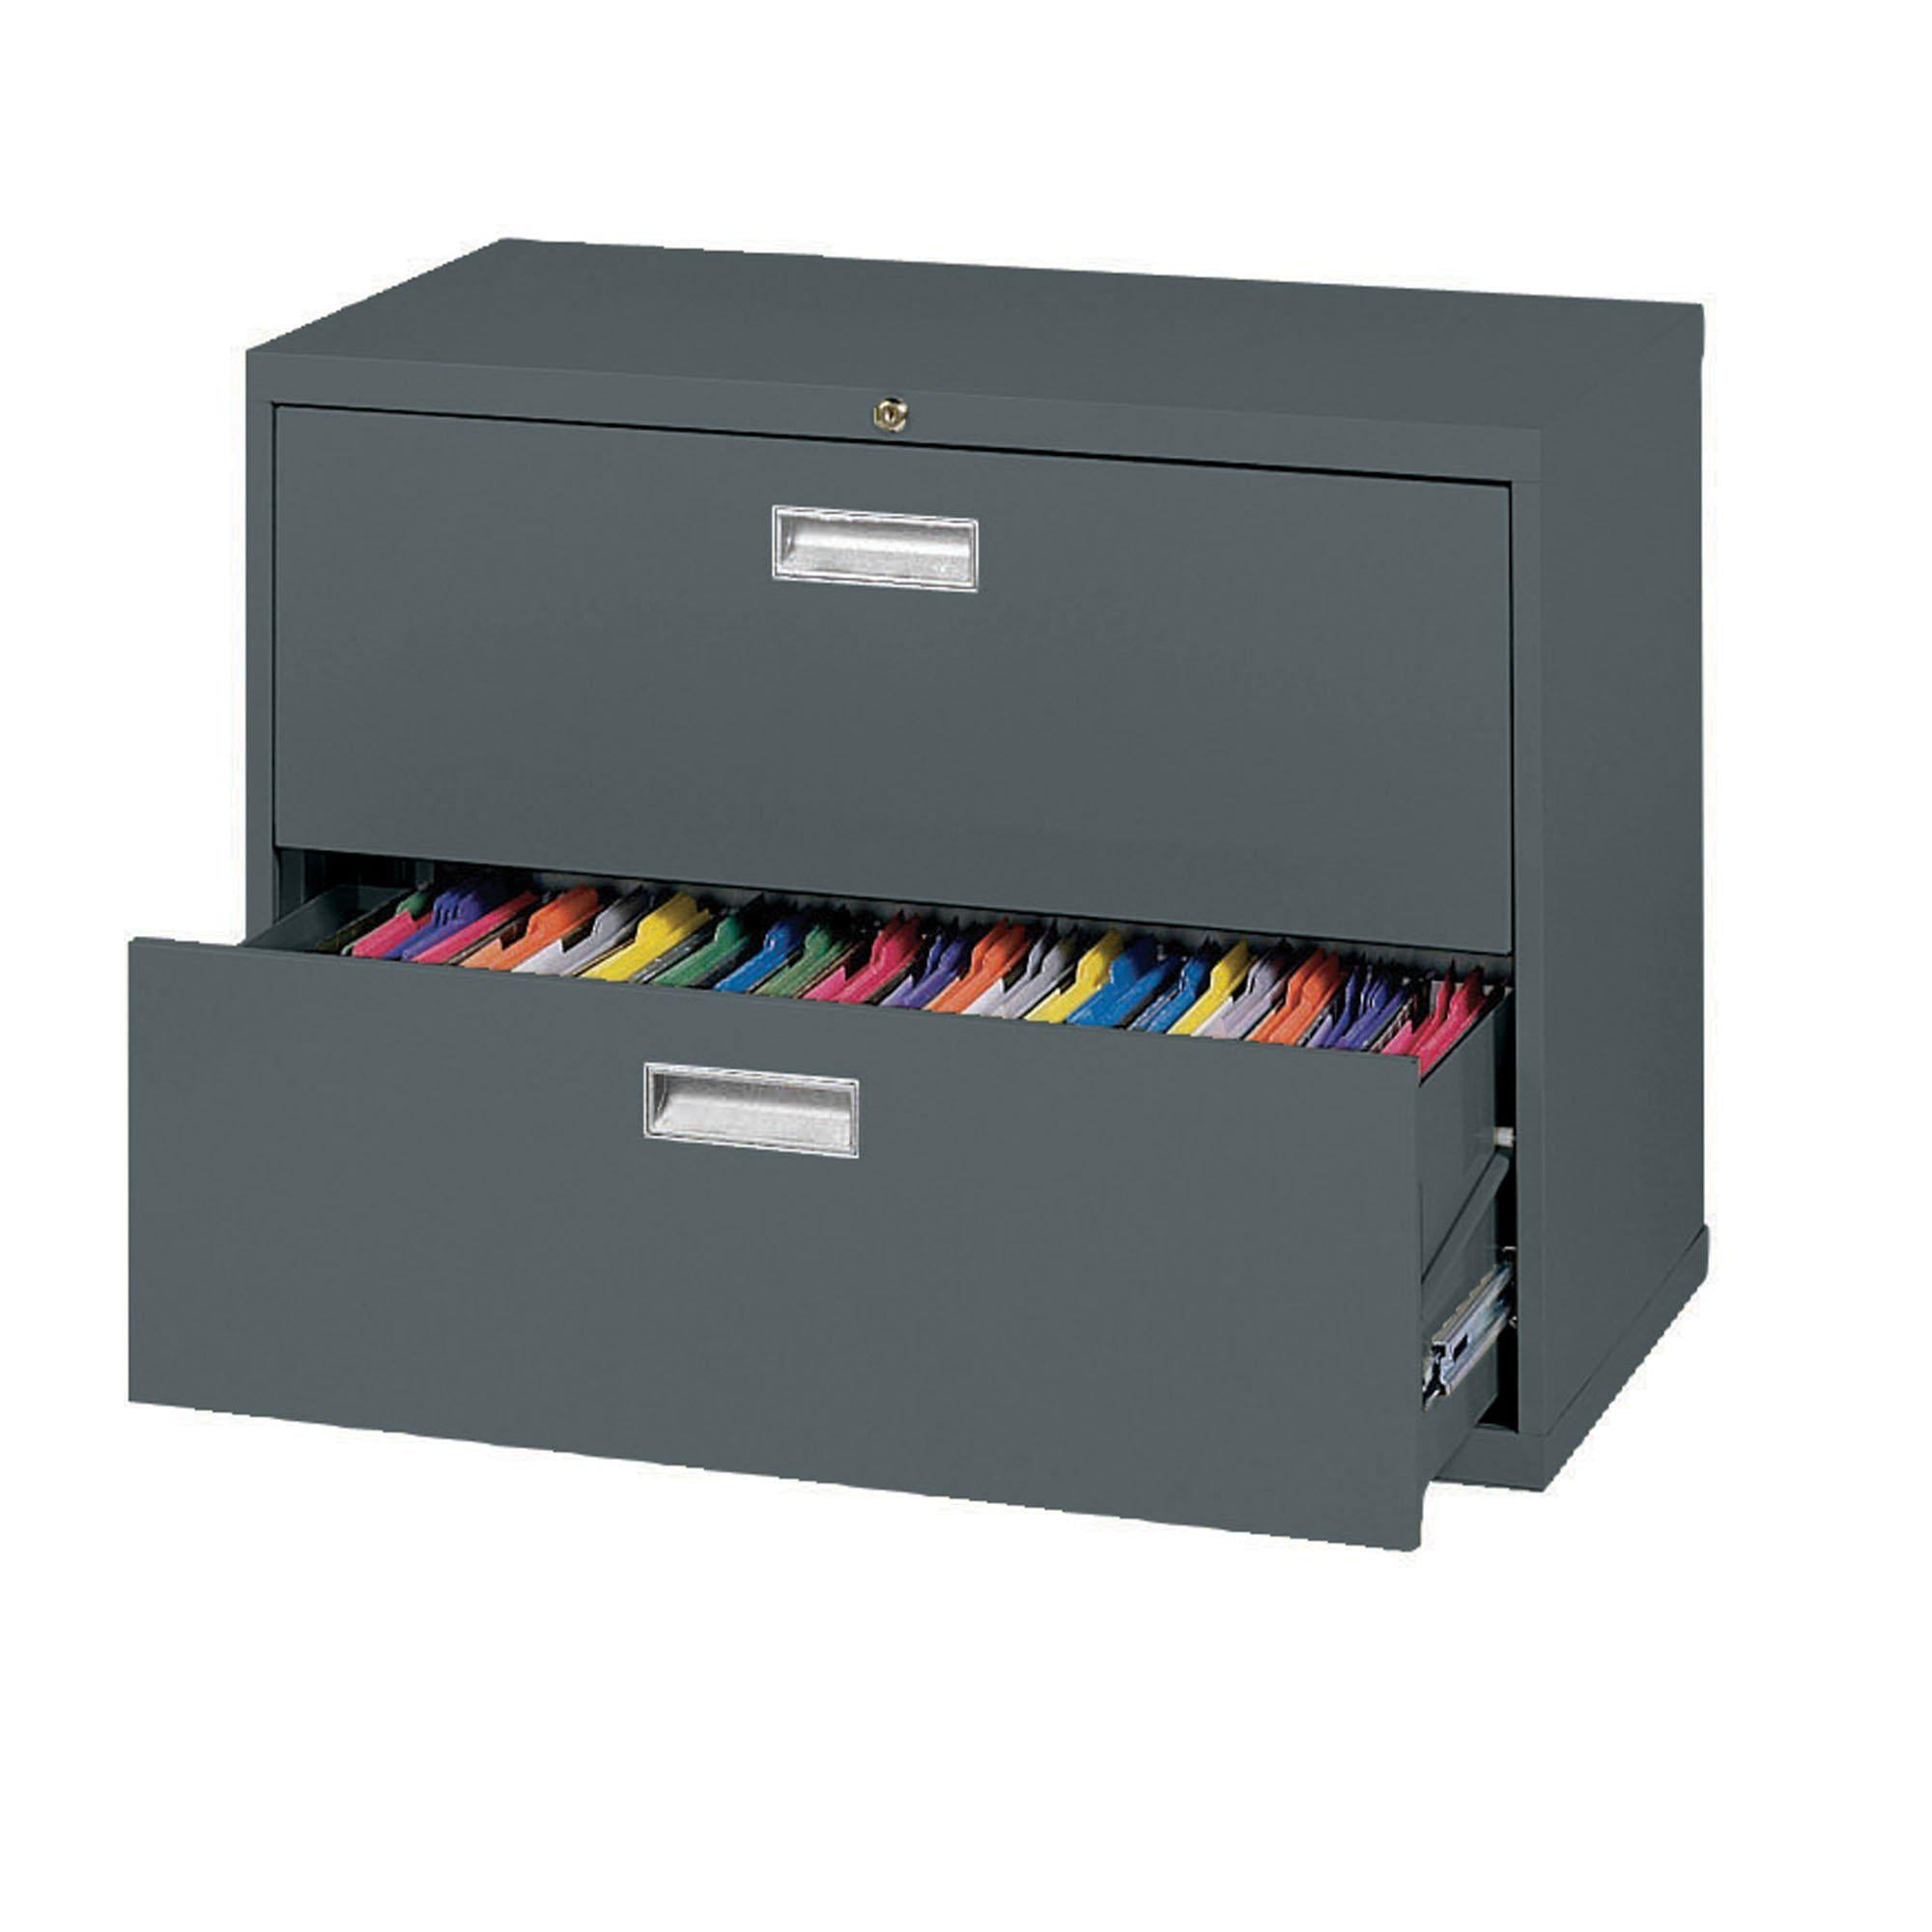 600 Series Lateral File, 2 Drawer, 36 x 19.25 x 28.375, Charcoal